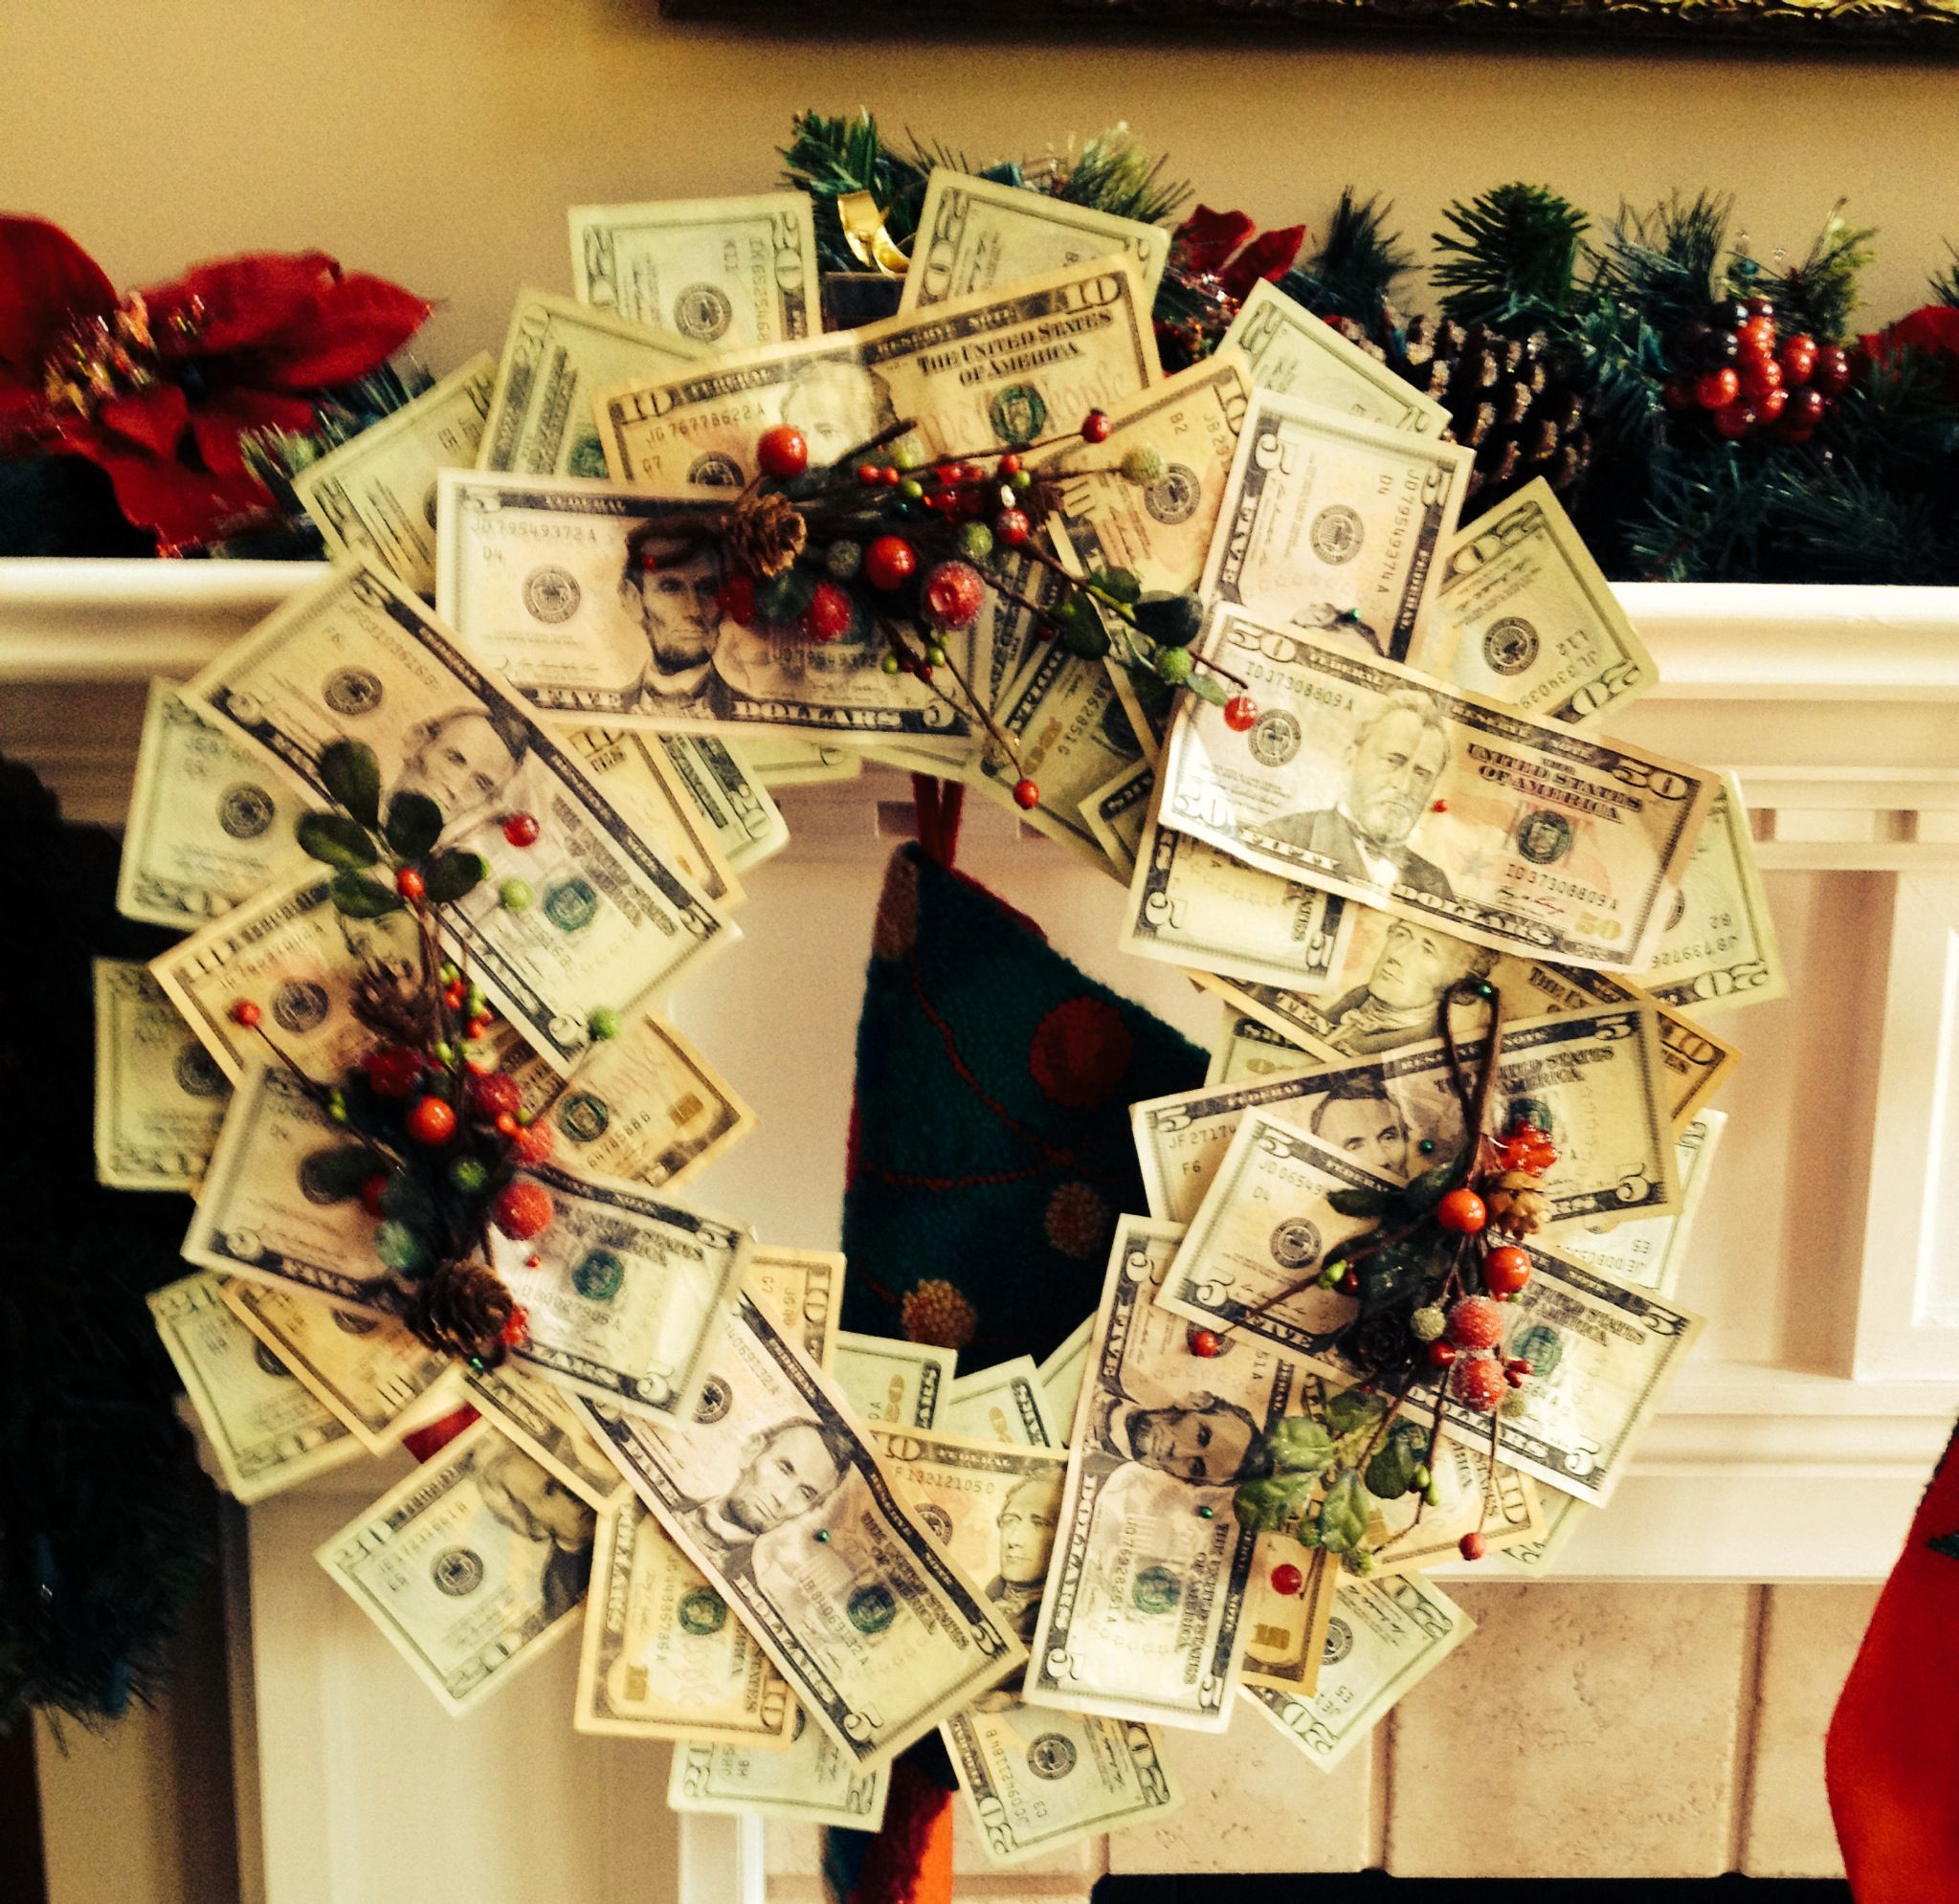 Giving money as a gift? Try this great money wreath! Just buy a foam wreath and pin the bills randomly. A unique twist on a simple gift.